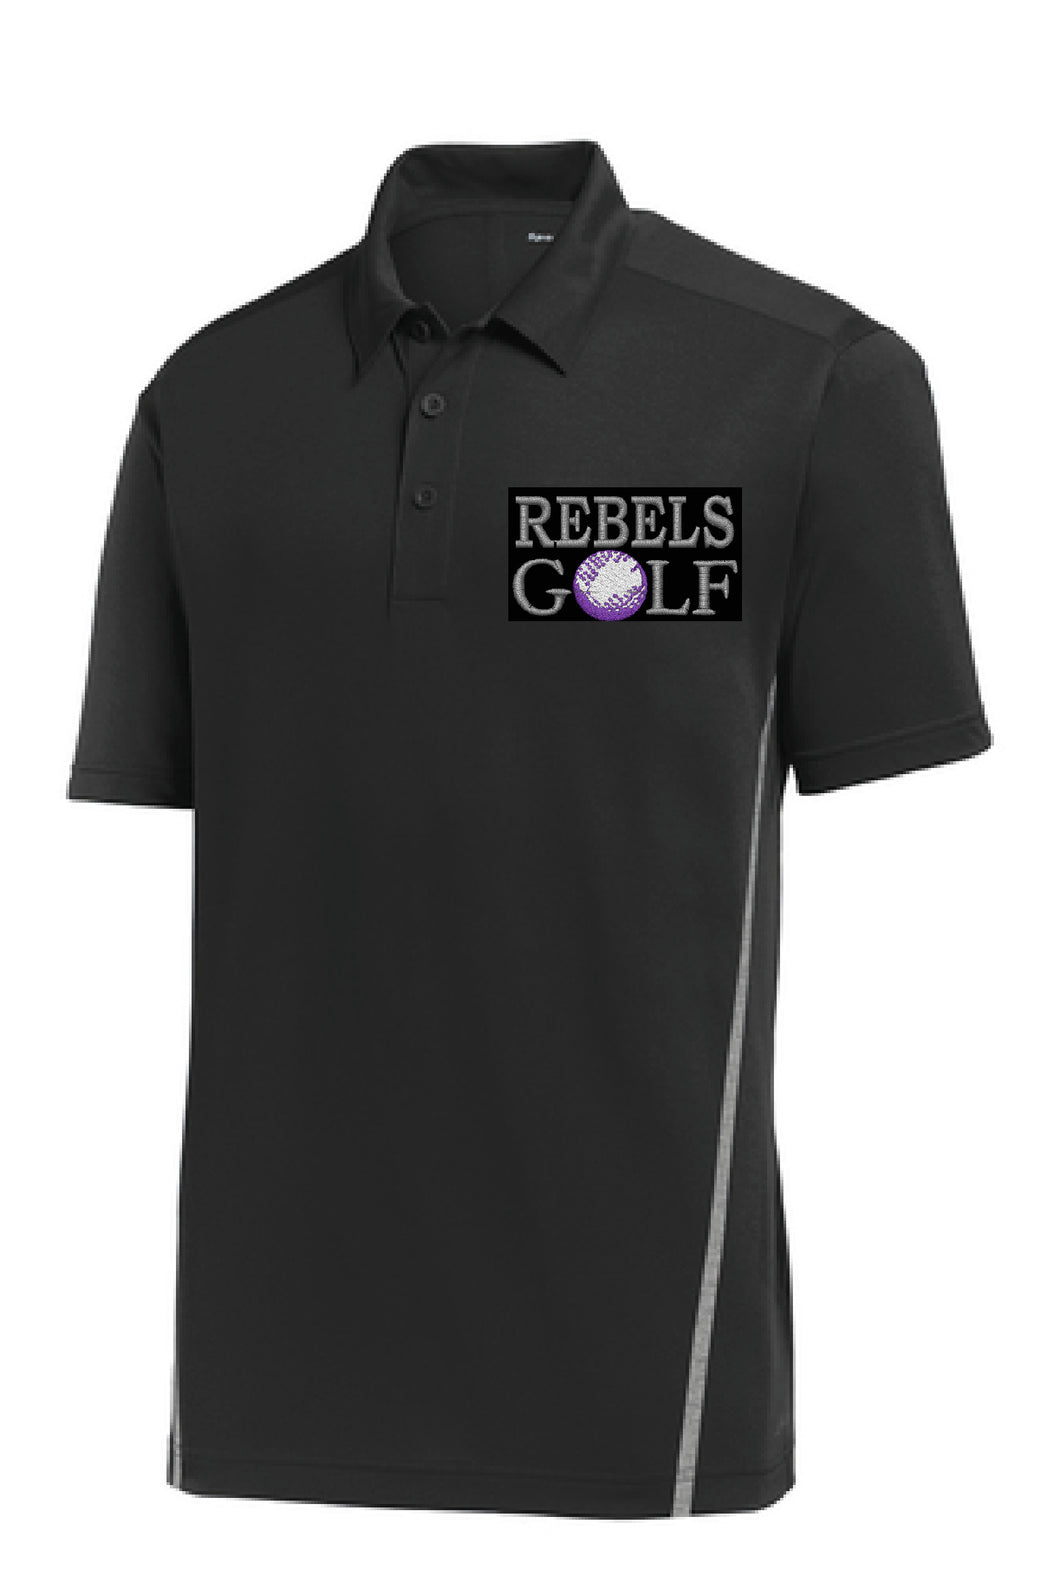 MCC GOLF Sport-Tek® Contrast PosiCharge® Tough Polo®